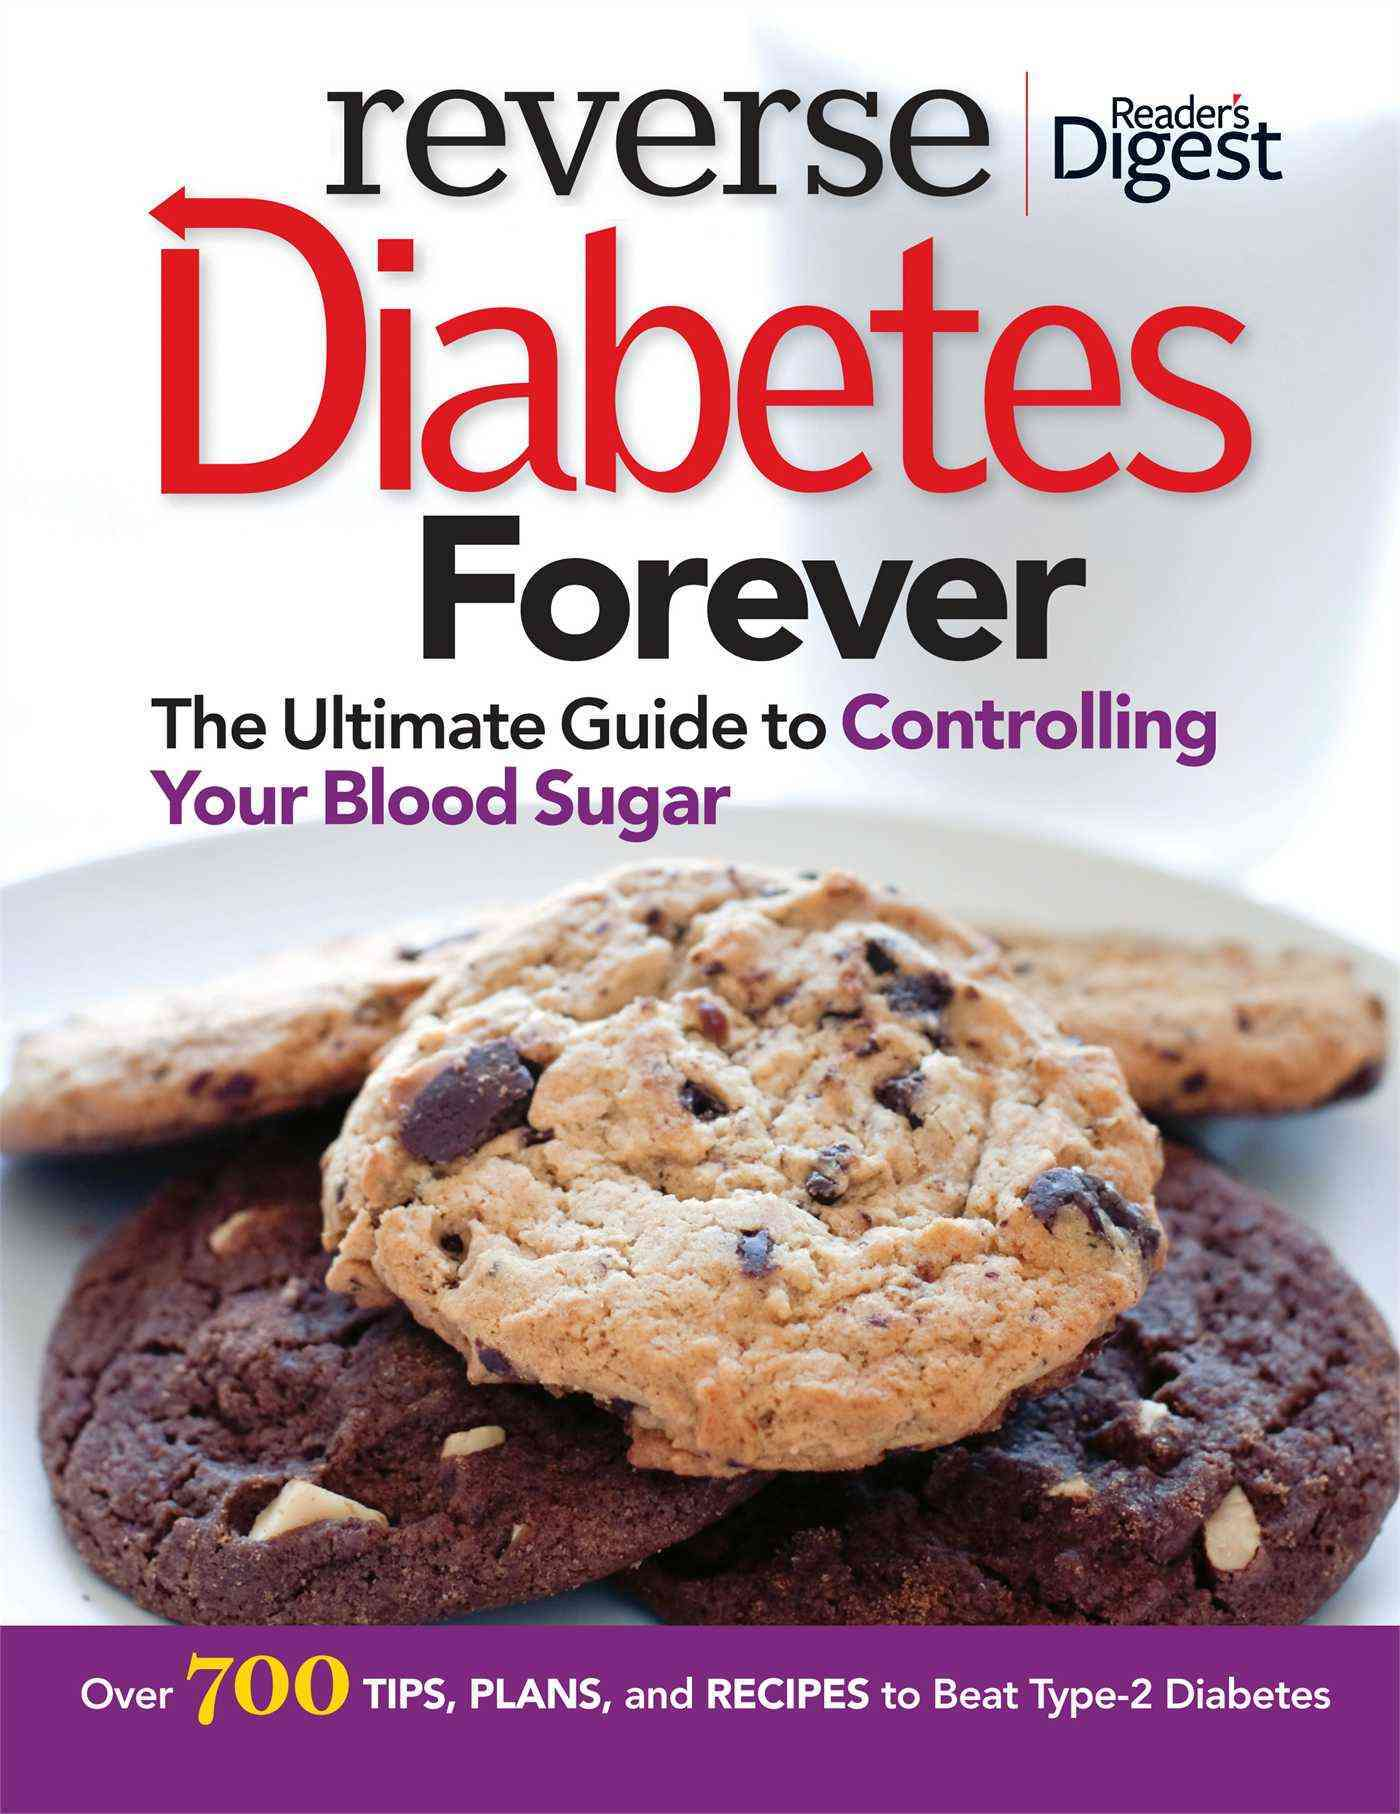 Reverse Diabetes Forever: The Ultimate Guide to Controlling Your Blood Sugar (Paperback)